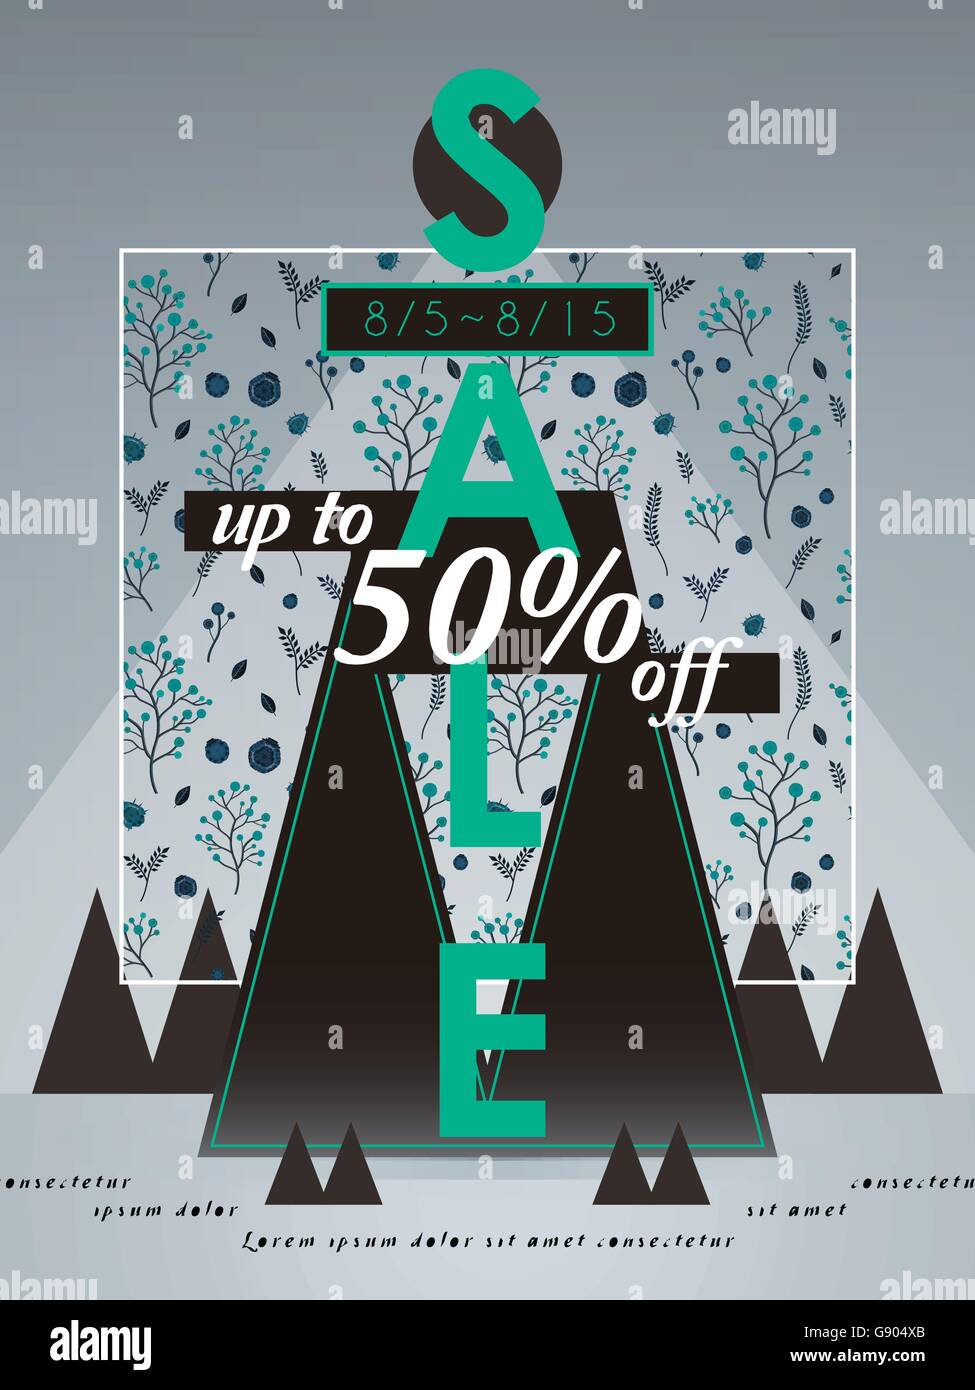 sale poster template design with triangle and floral background - Stock Vector